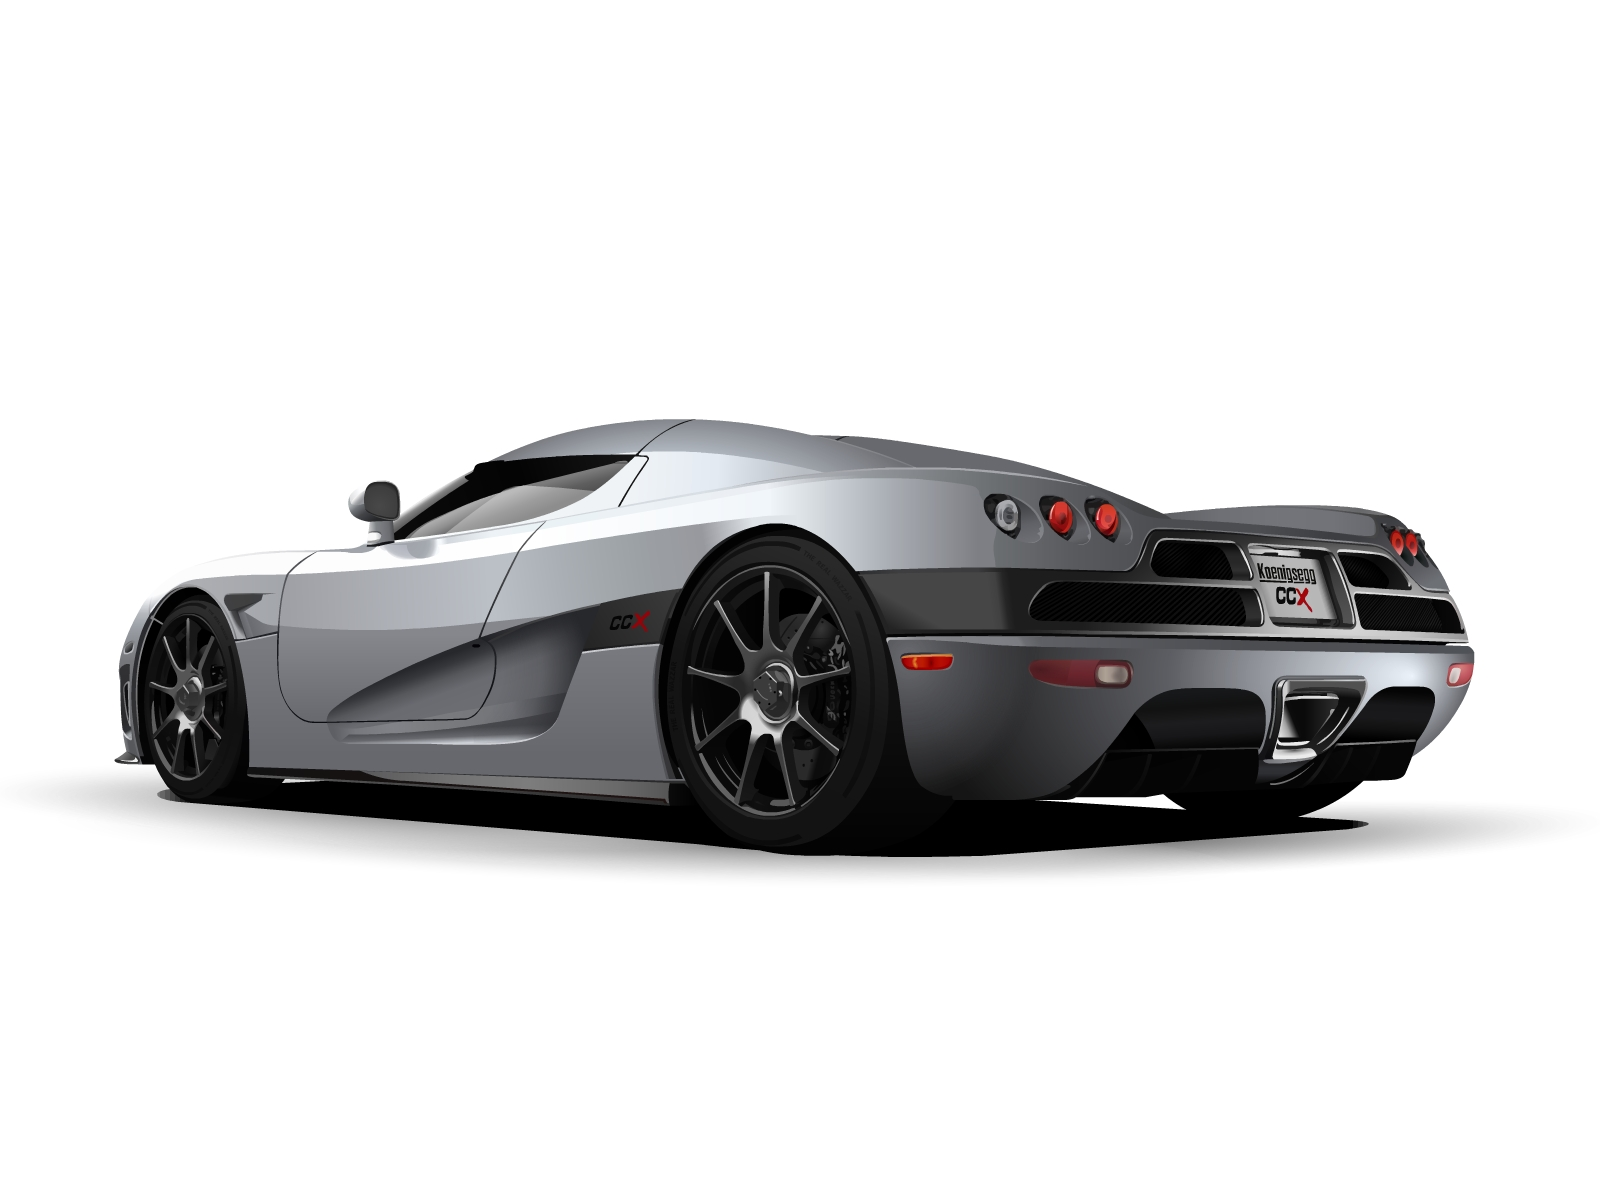 Photo Gallery: Koenigsegg CCX Photos And Review